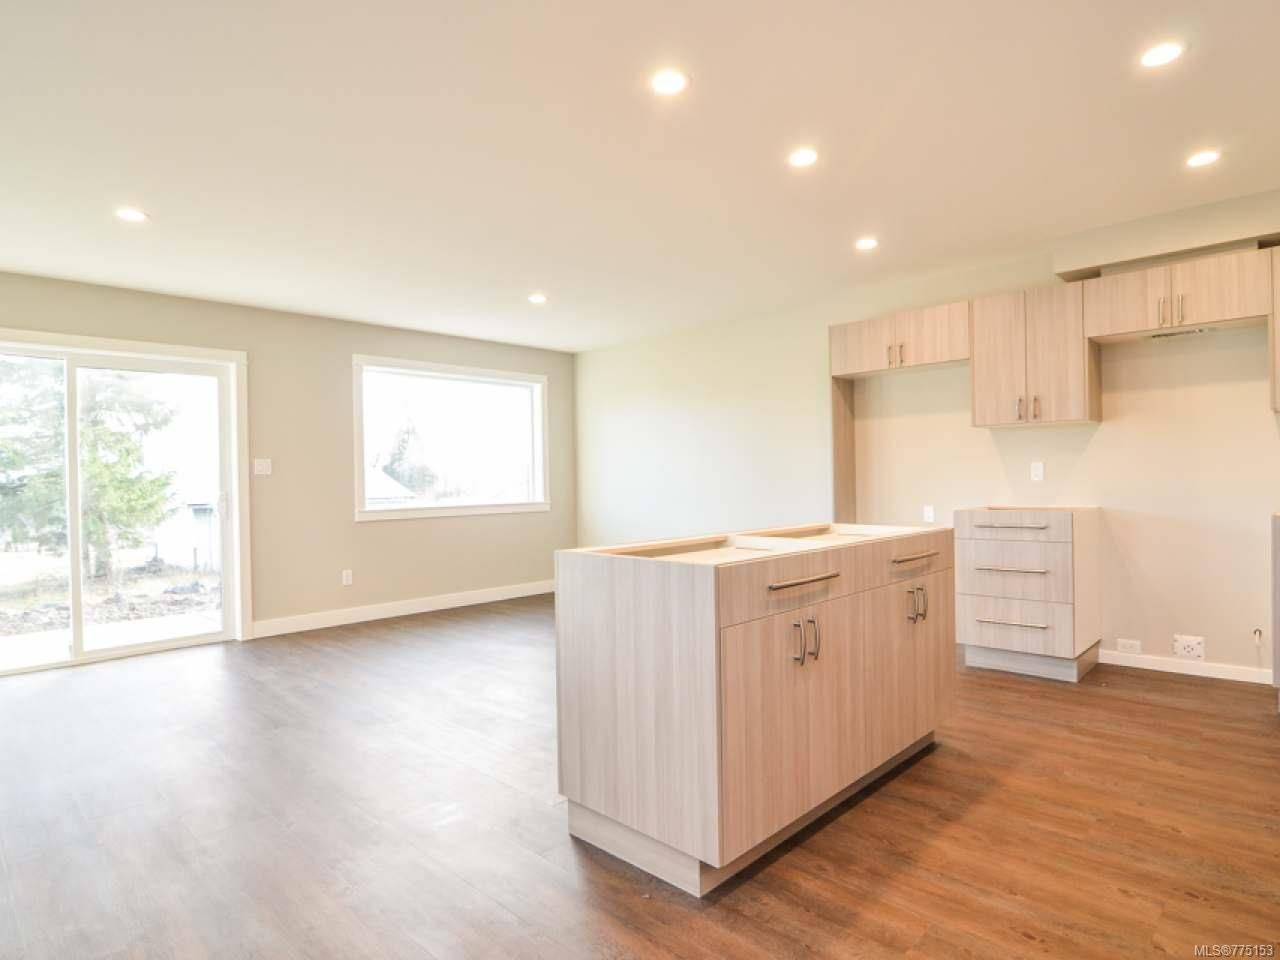 Photo 4: Photos: 2 595 Petersen Rd in CAMPBELL RIVER: CR Campbell River West Half Duplex for sale (Campbell River)  : MLS®# 775153